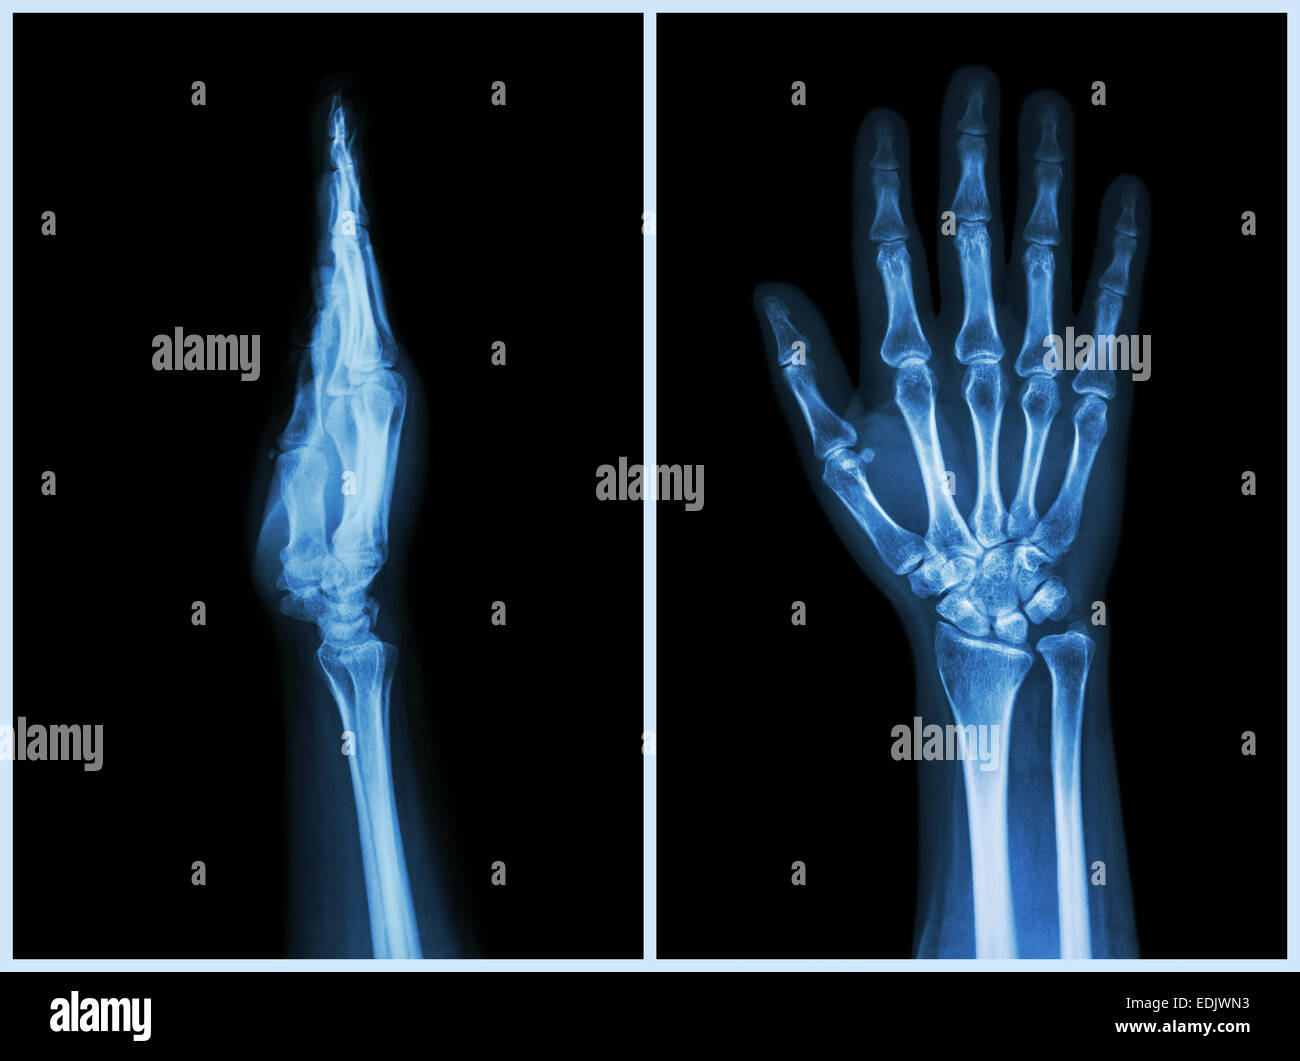 Human Wrist Anatomy Xray View Stock Photos Human Wrist Anatomy